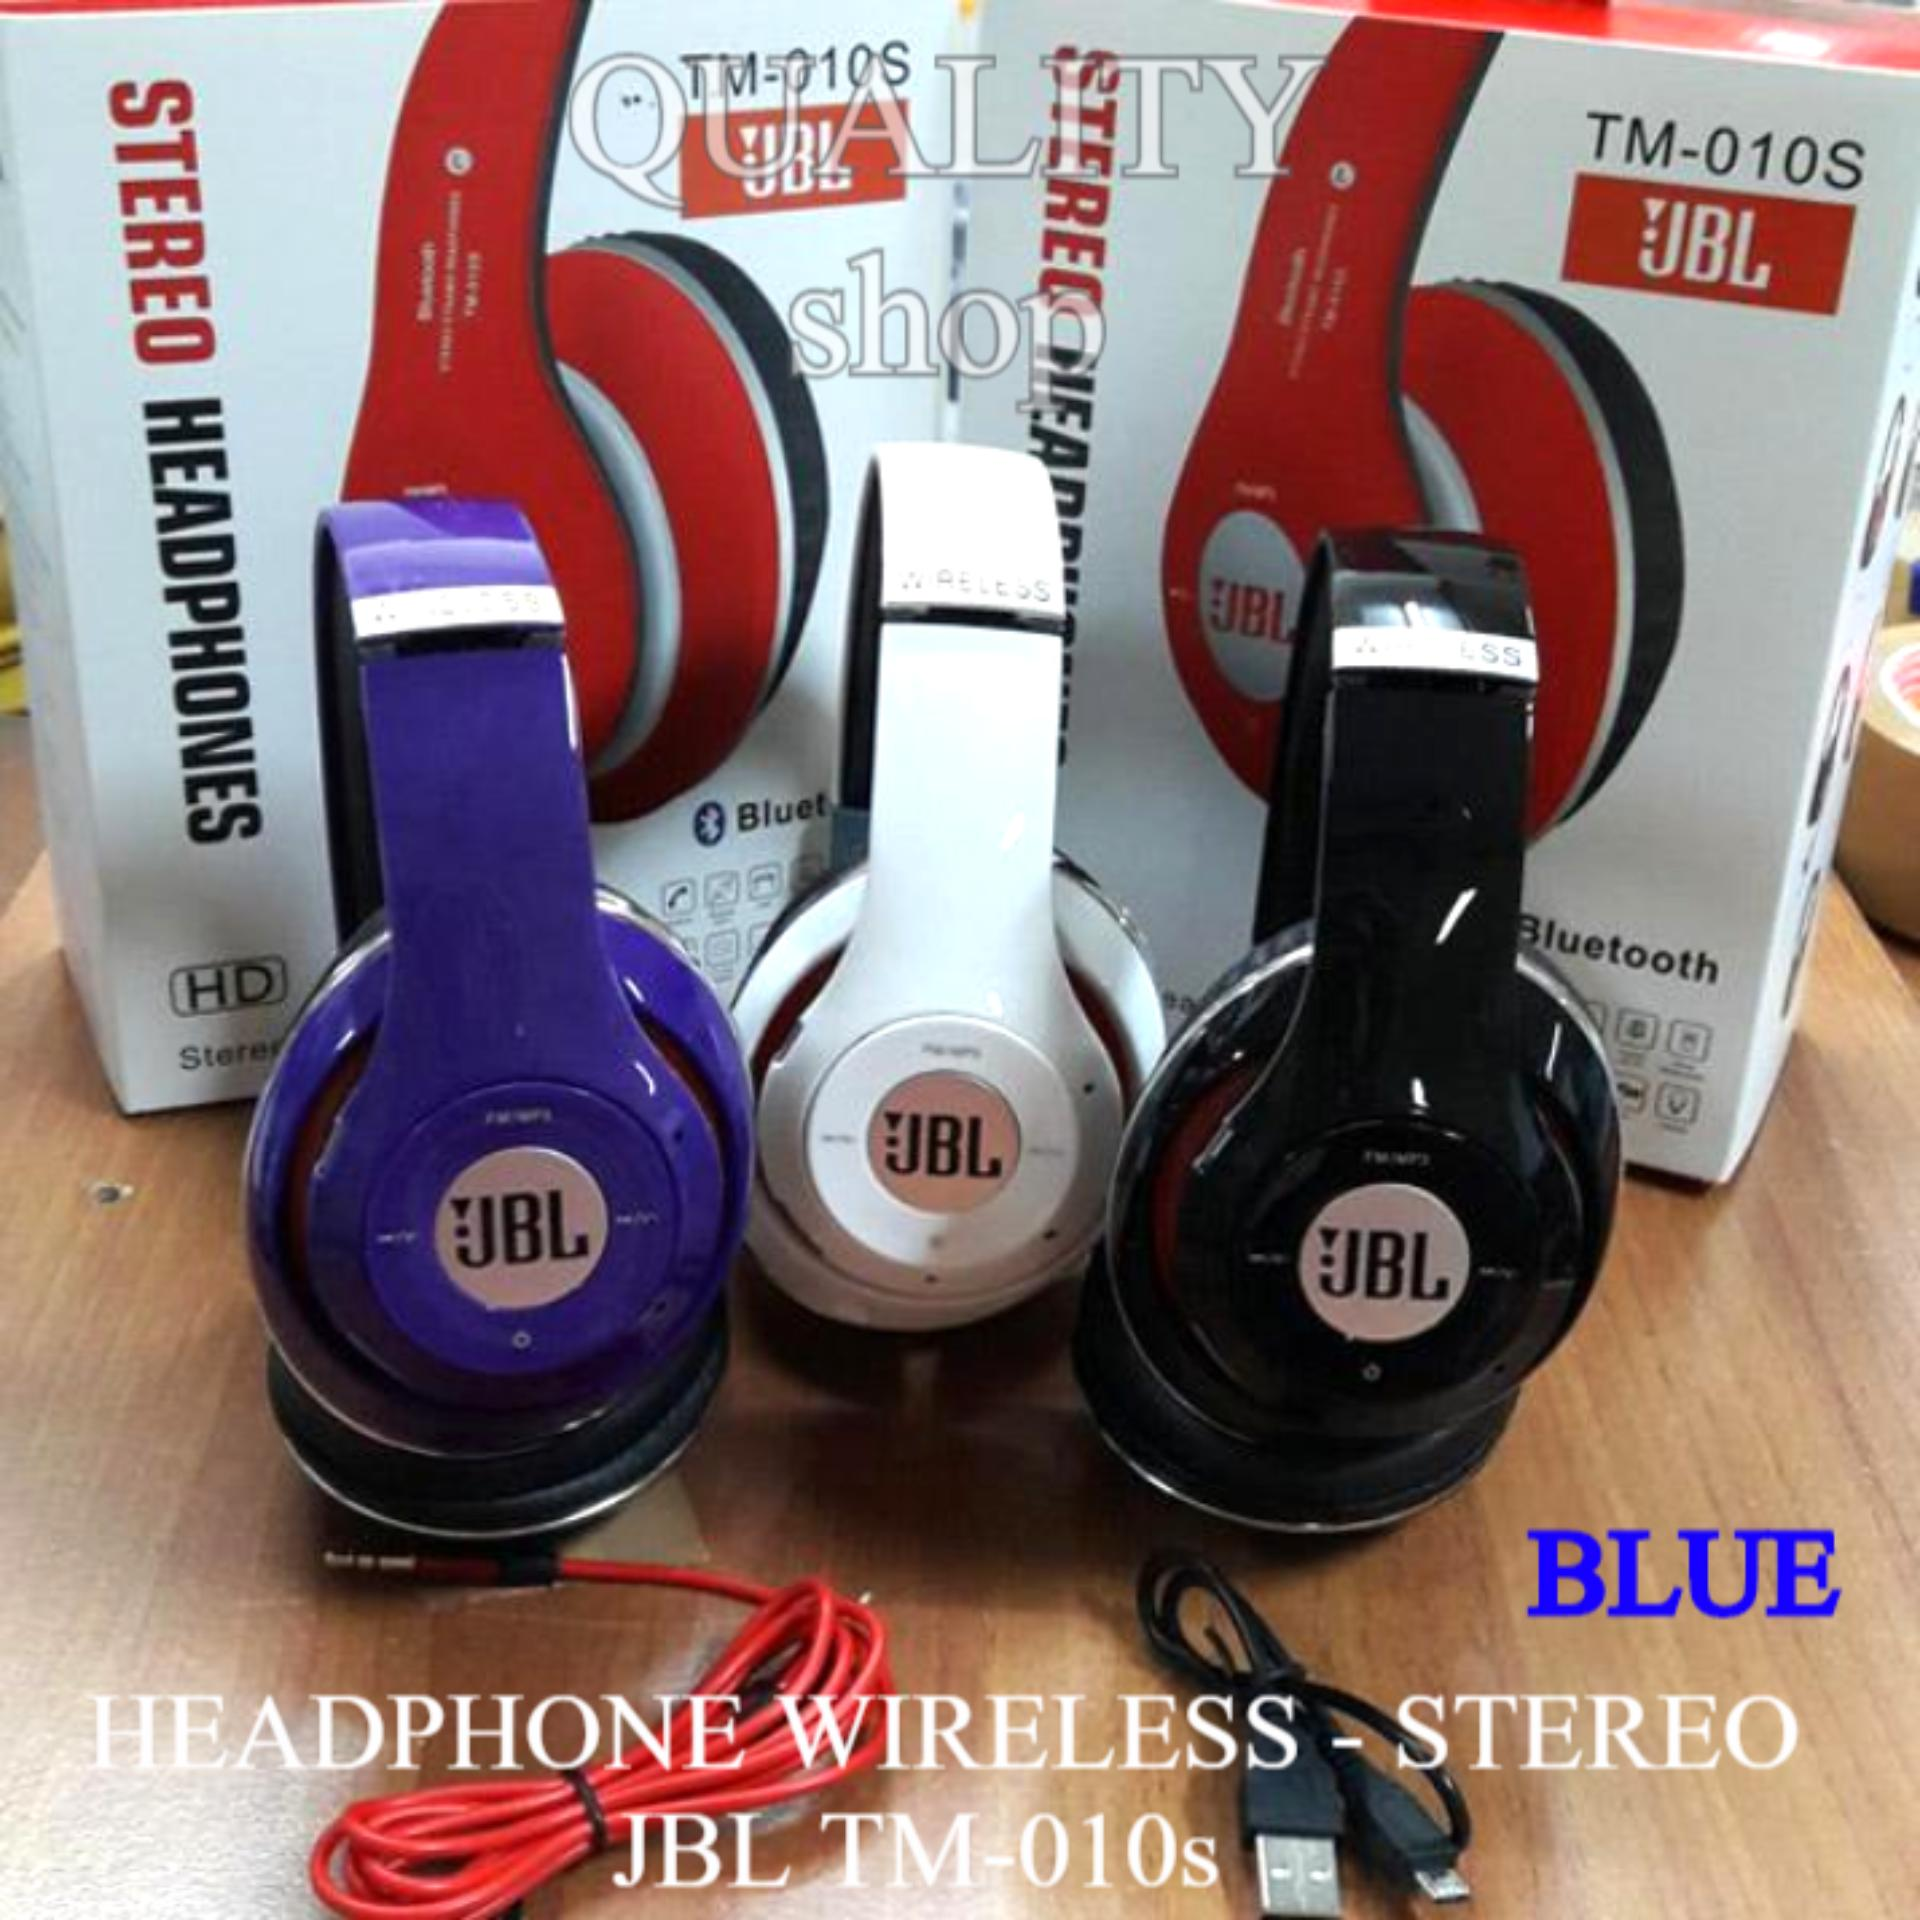 Miliki Segera Headphone Wireless Stereo Jbl Tm 010S